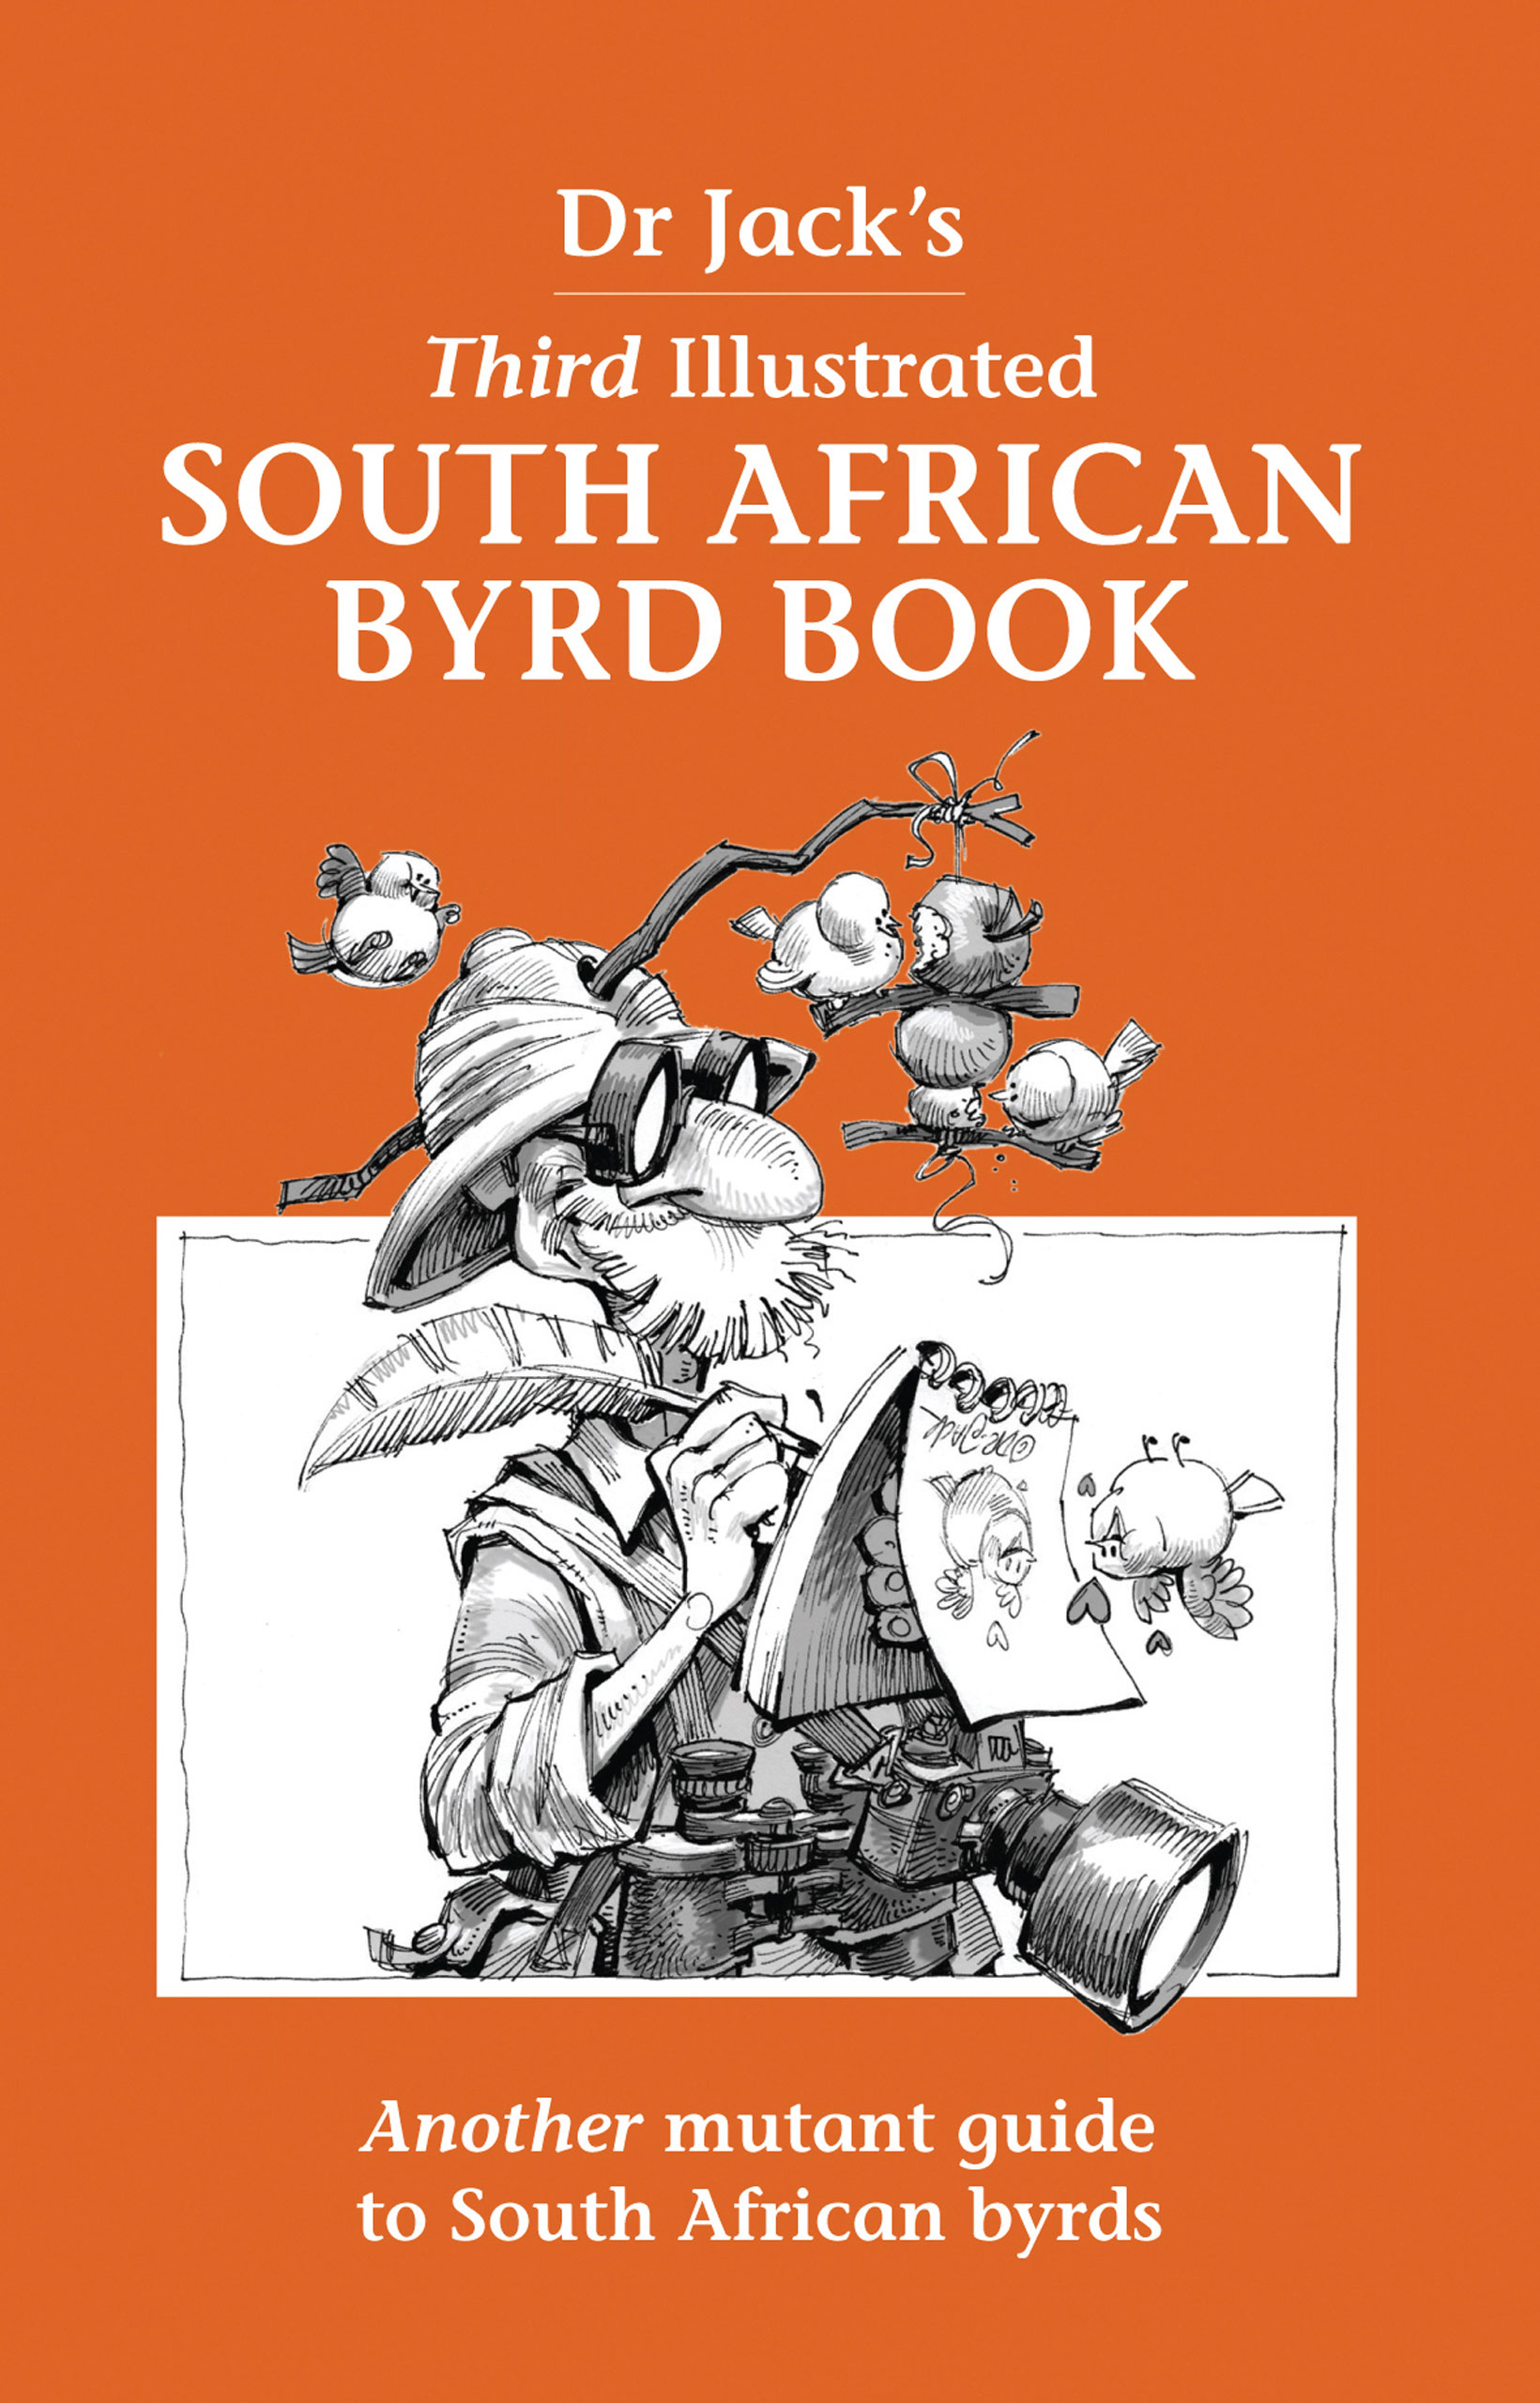 Picture of Dr Jack's illustrated South African byrd book